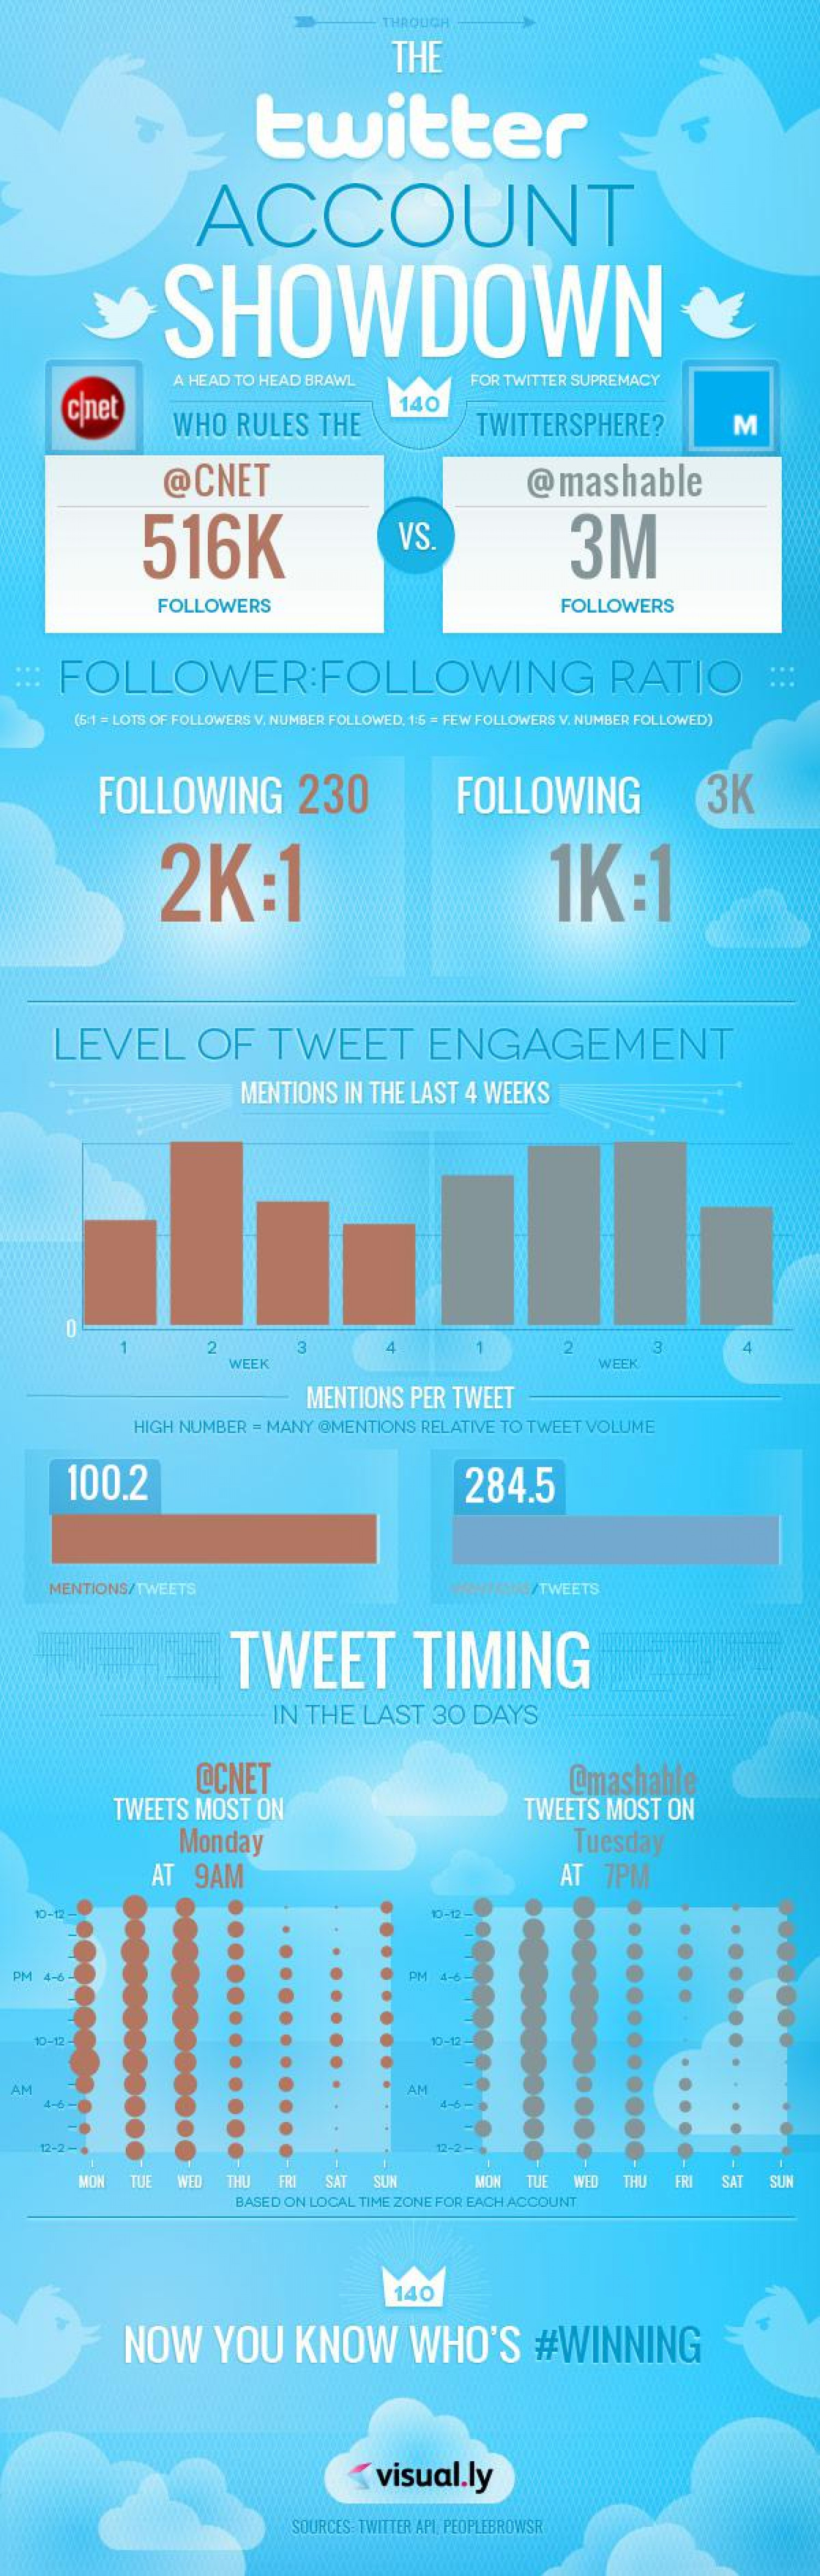 Twitter War Between Mashable and Cnet Infographic